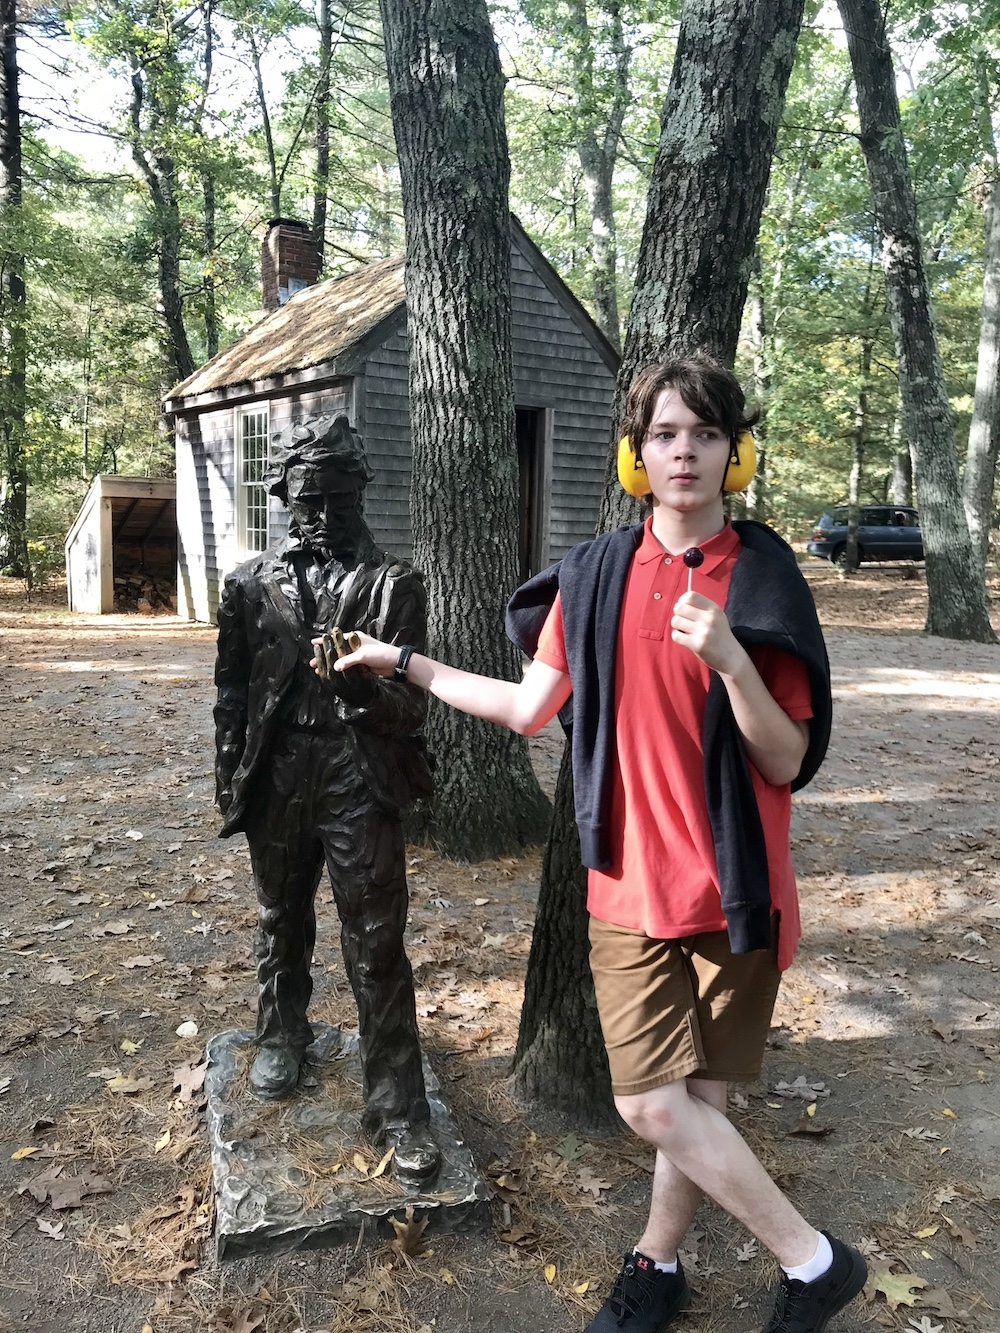 Dylan and Thoreau